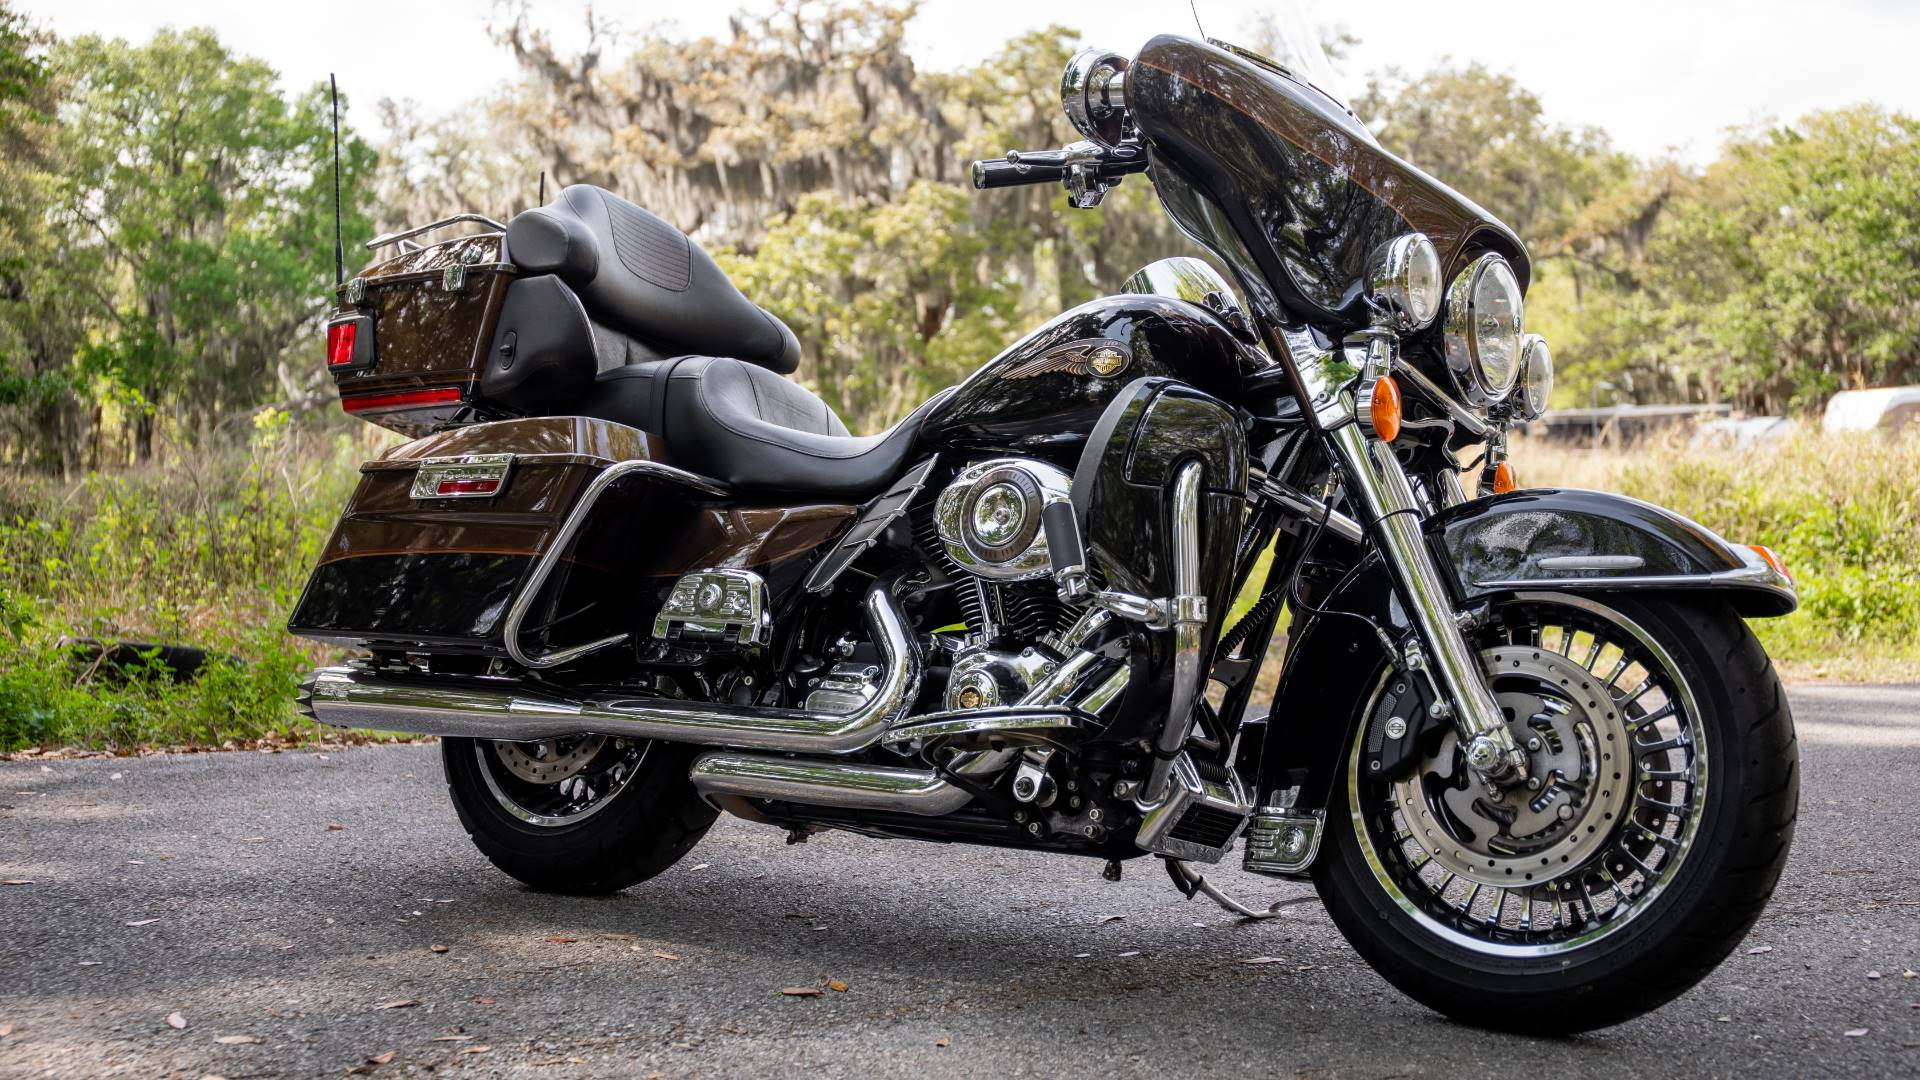 2013 Harley-Davidson Electra Glide® Ultra Limited 110th Anniversary Edition in Lakeland, Florida - Photo 42